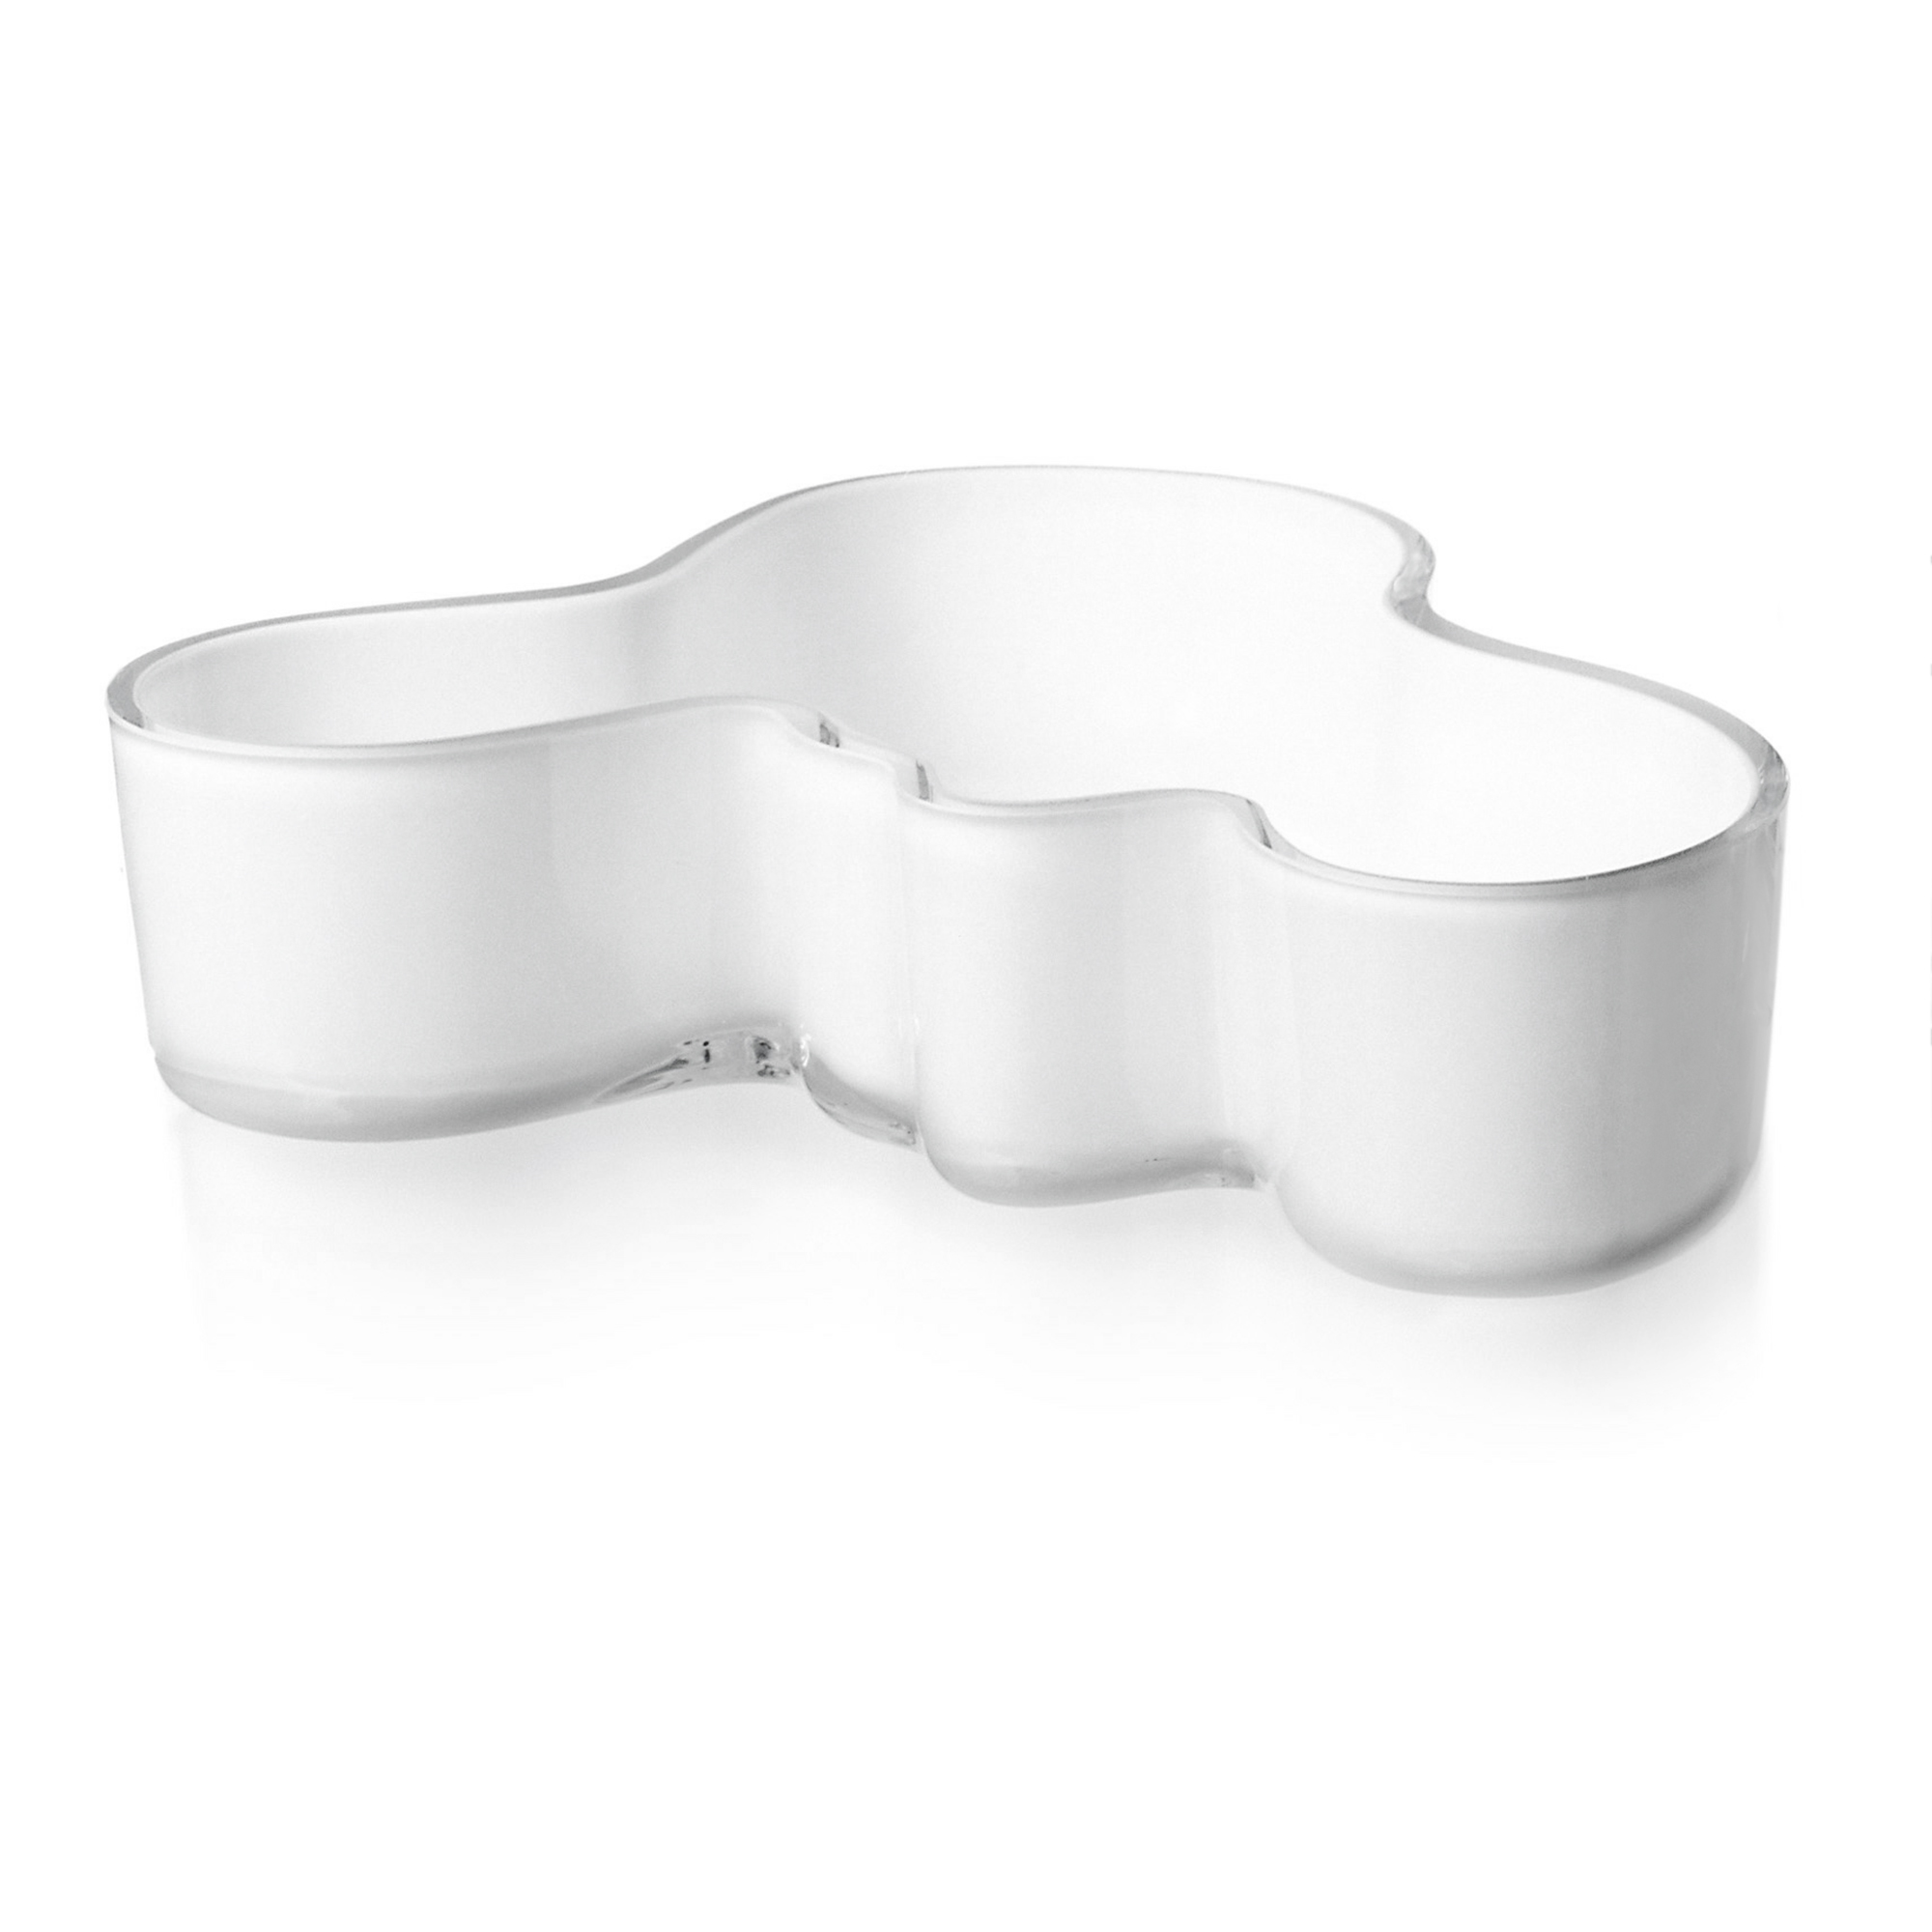 Iittala Alvar Aalto Collection Skål 195×50 mm Vit